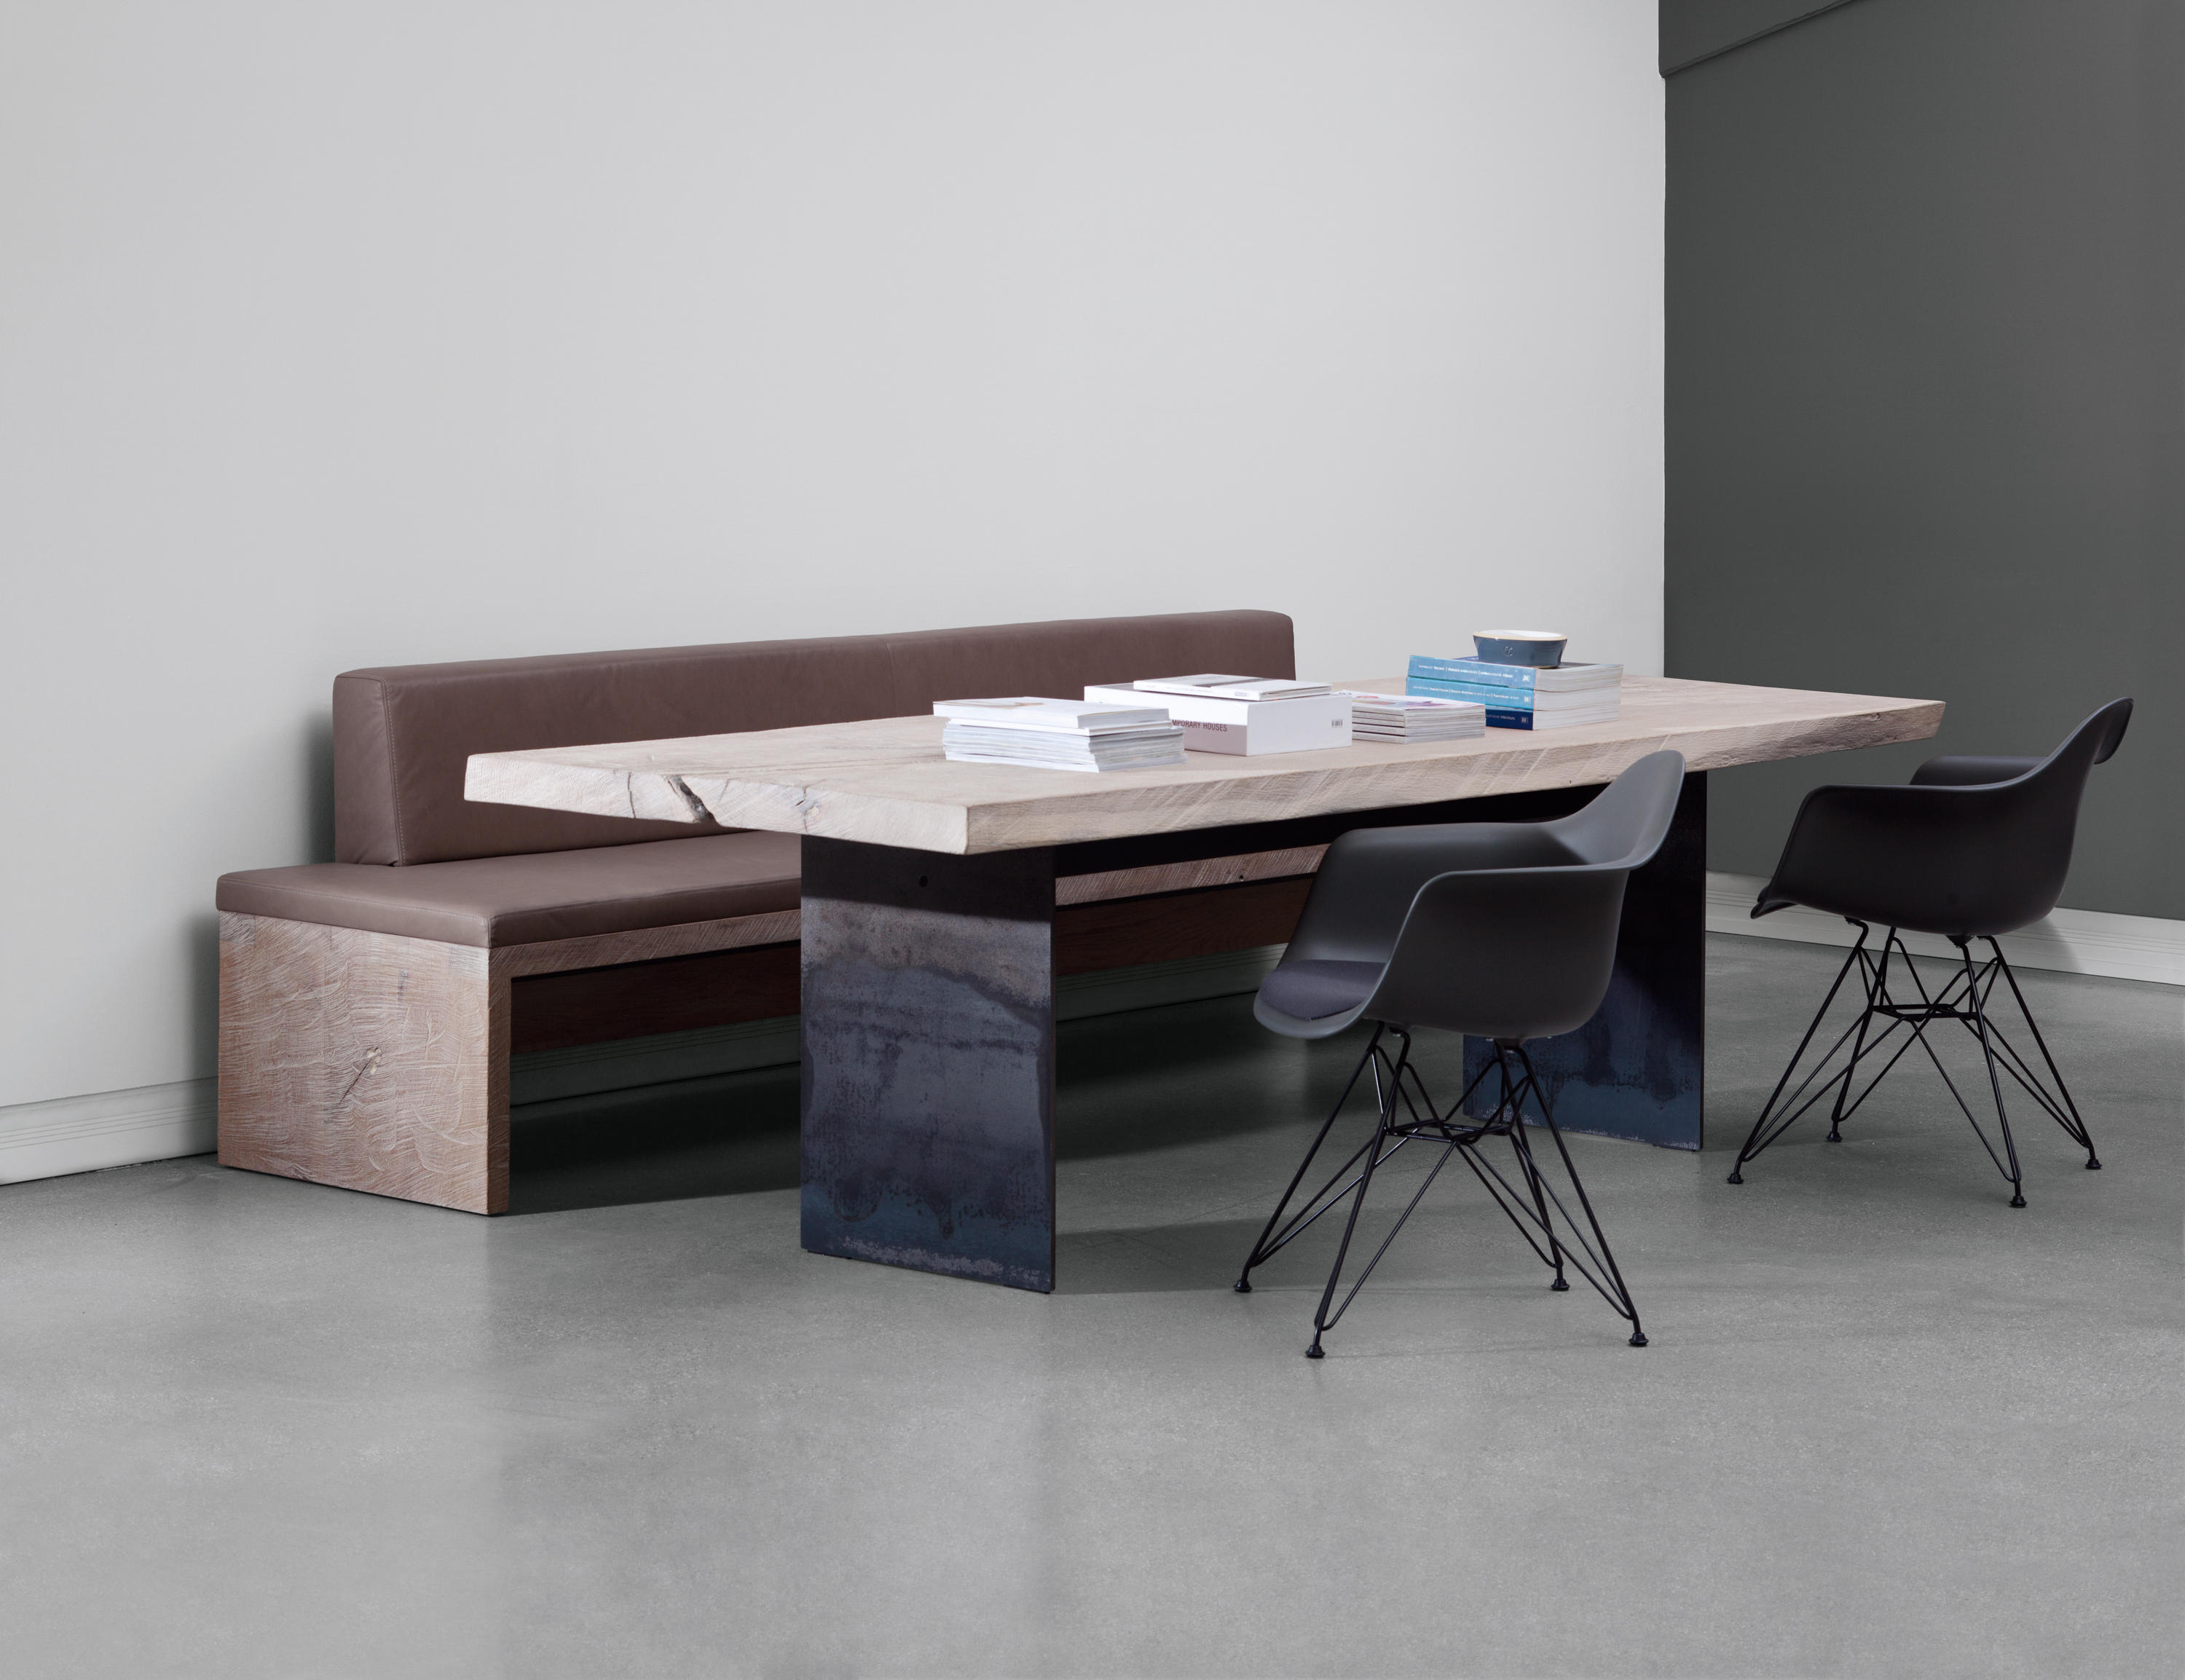 sk 01 table monolith dining tables from janua christian seisenberger architonic. Black Bedroom Furniture Sets. Home Design Ideas